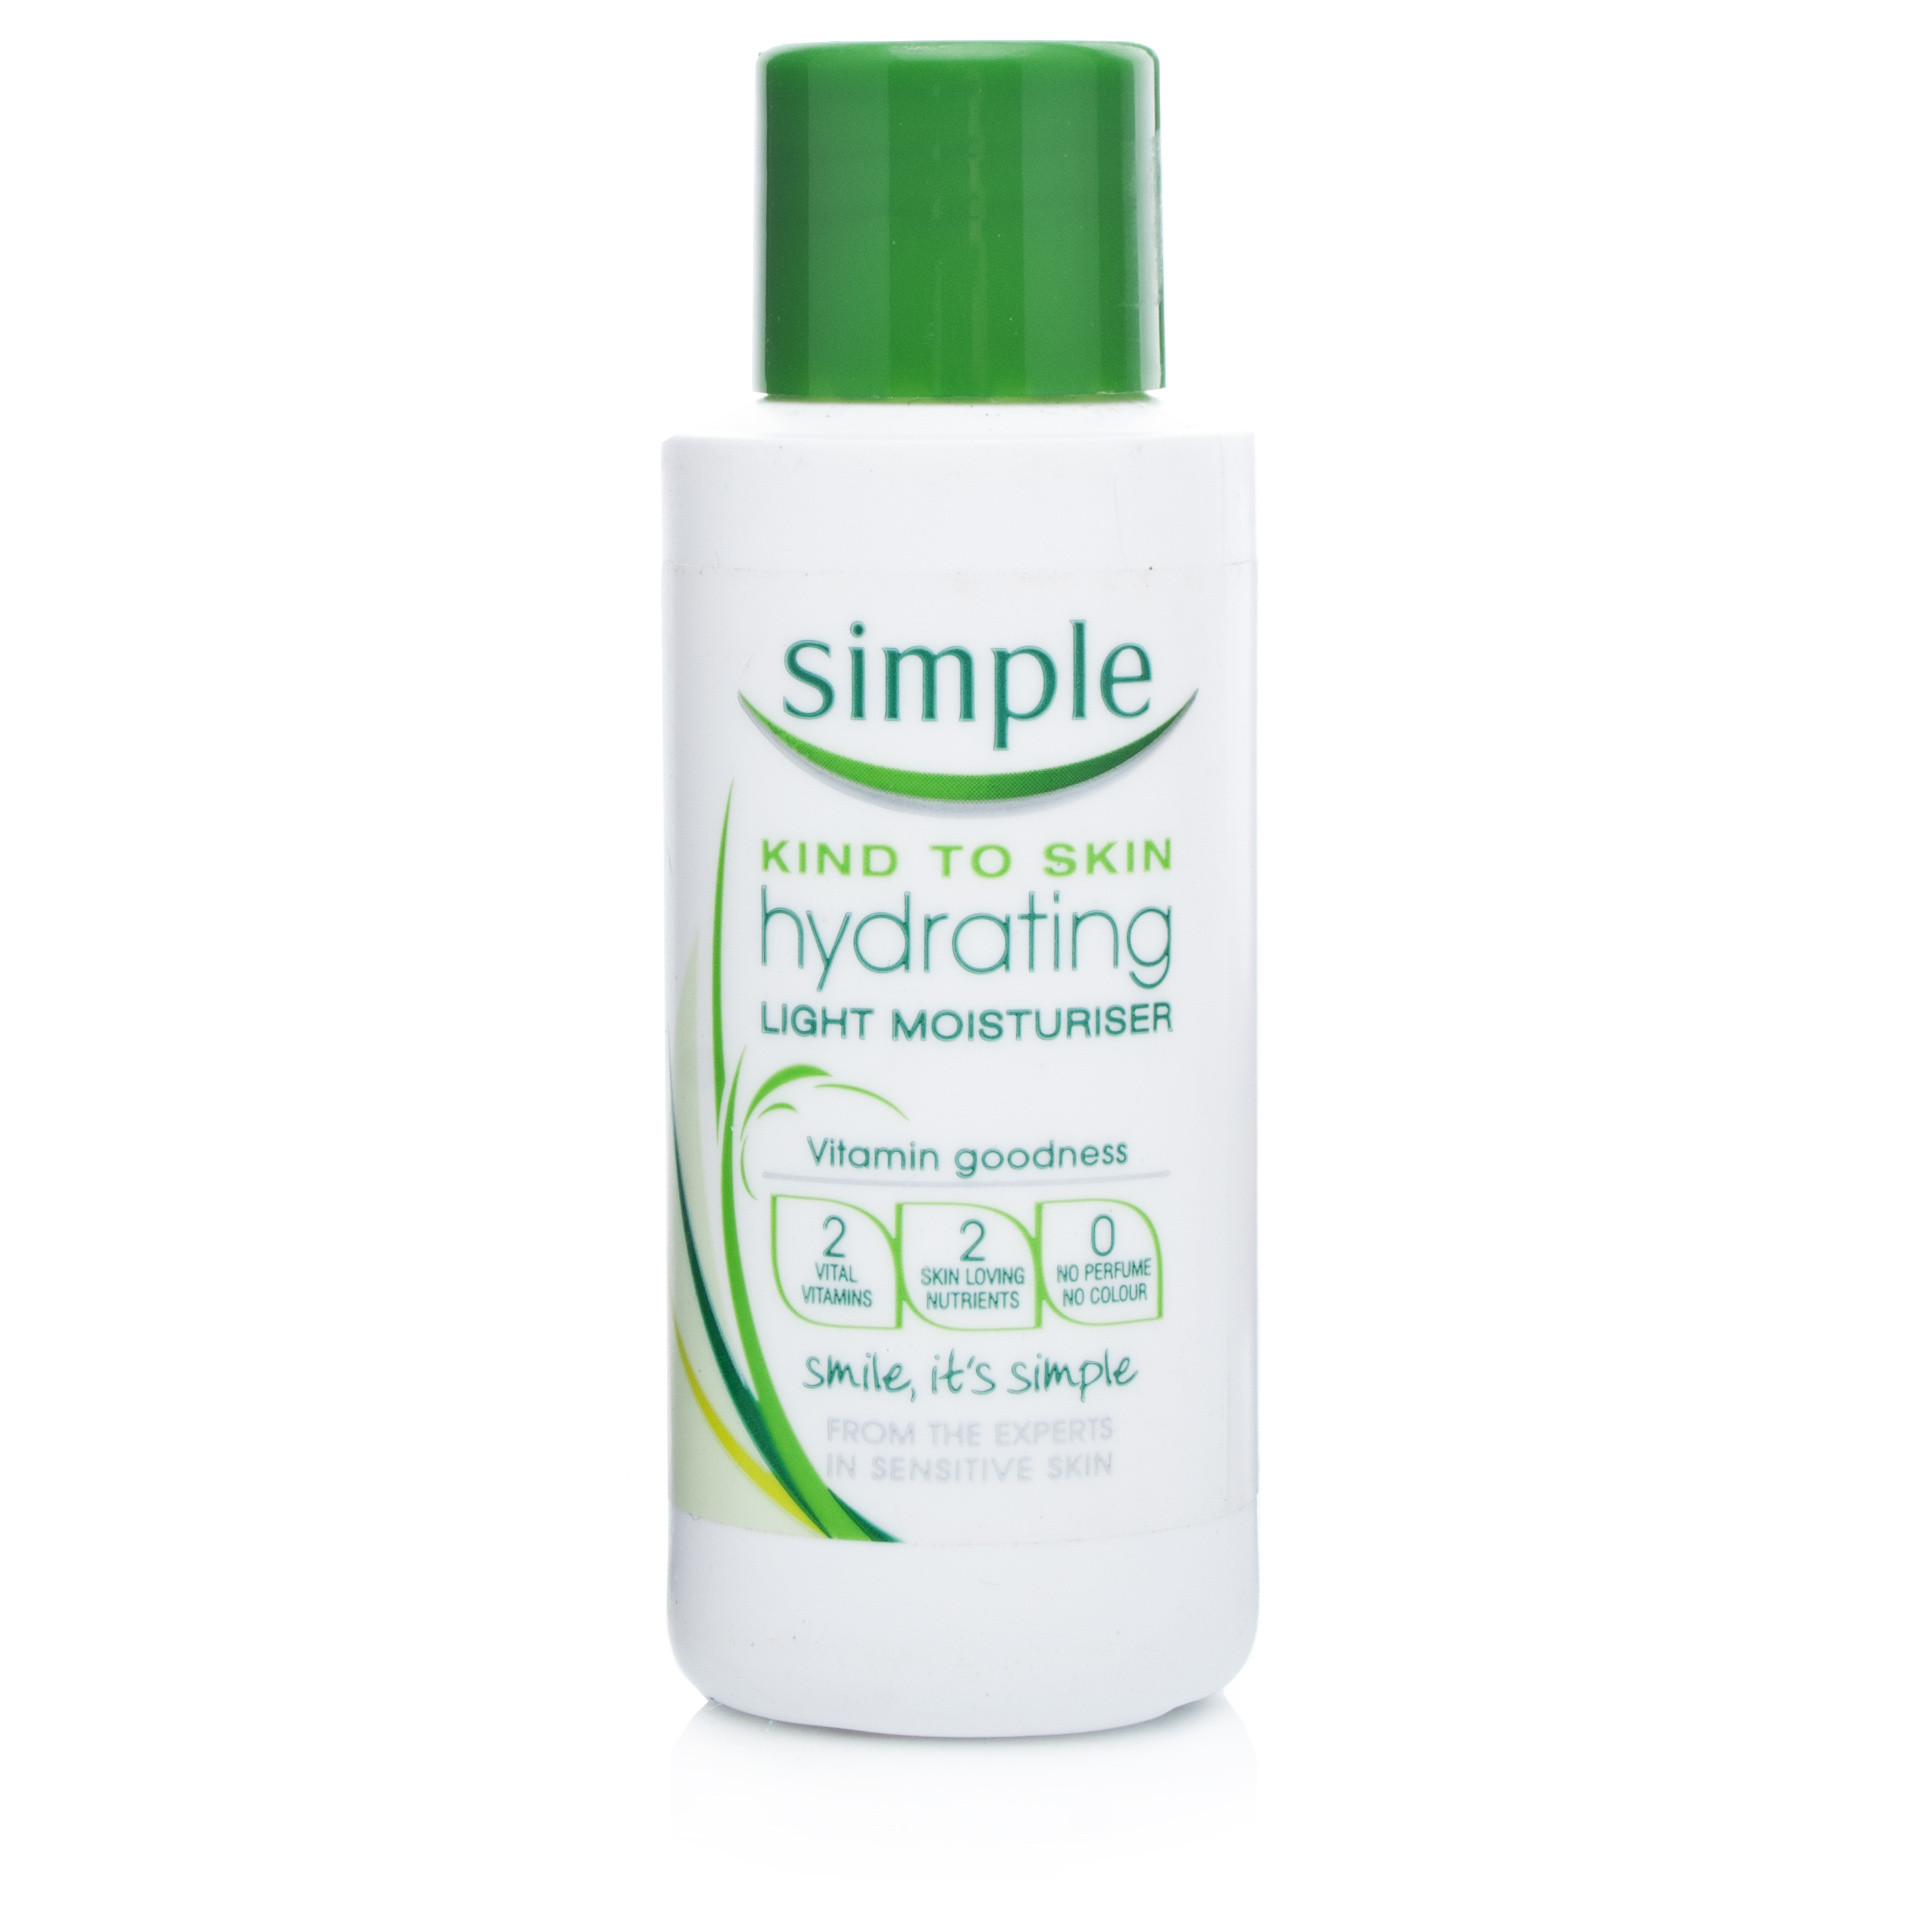 Simple Hydrating Light Moisturiser